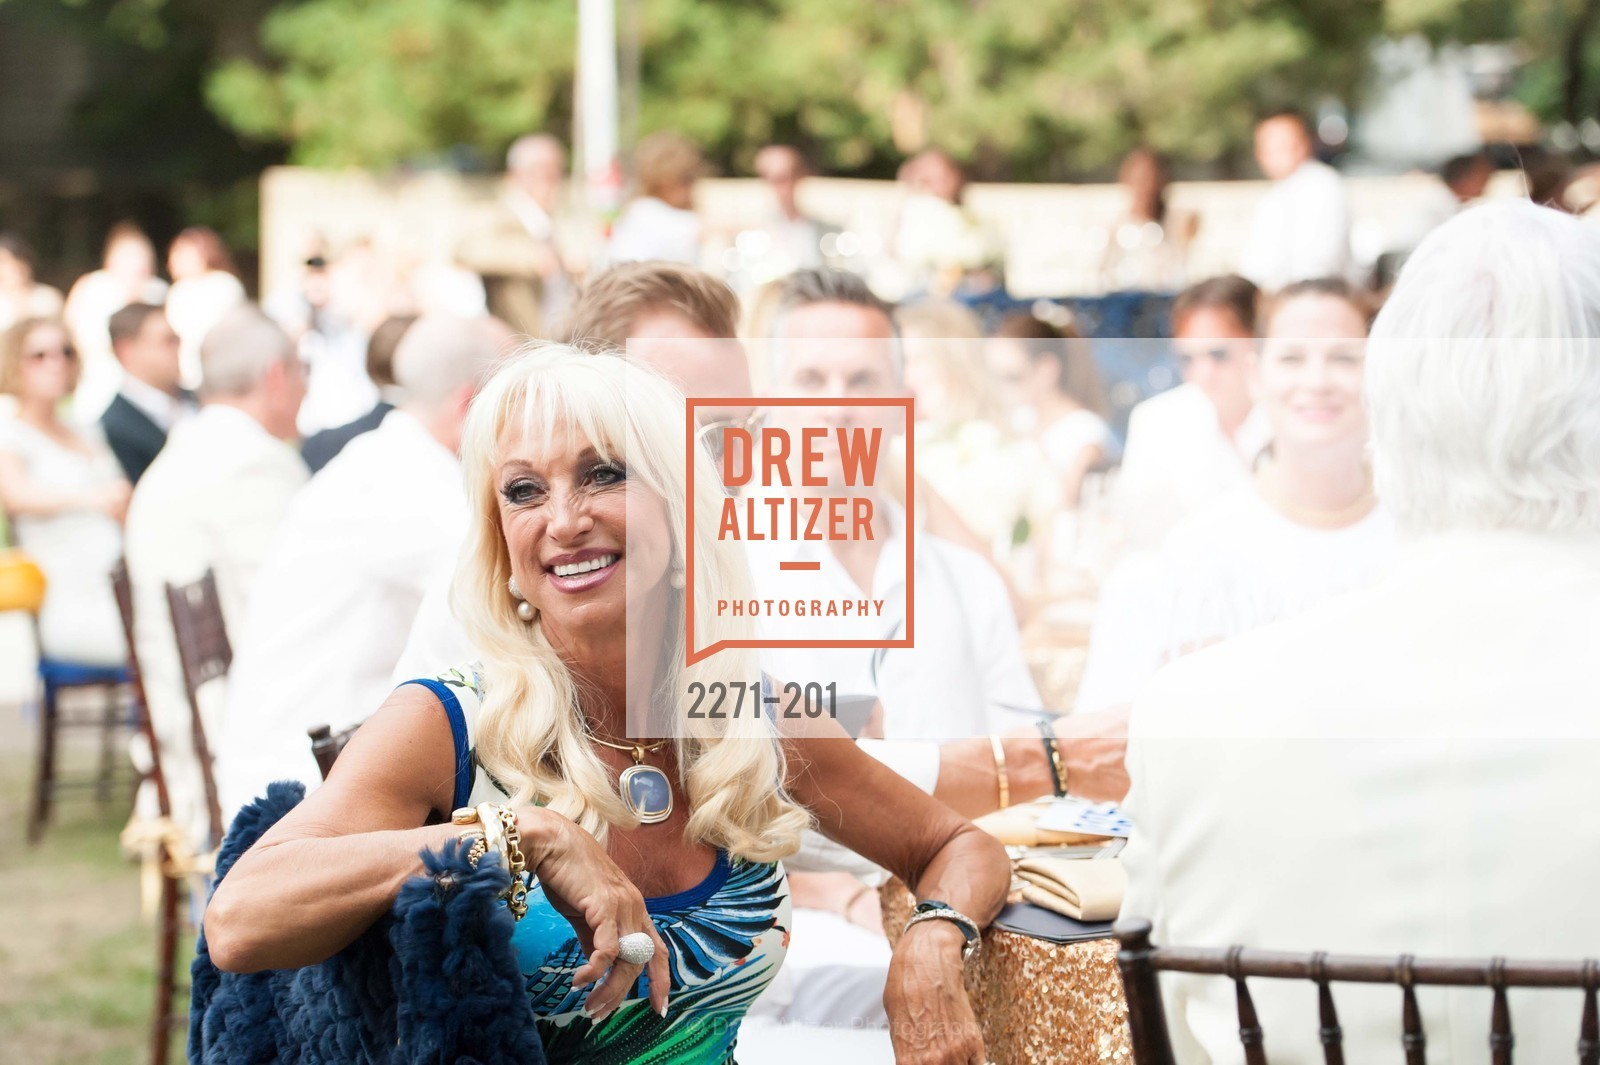 Daru Kawalkowski, Festival del Sole Annual Gala at Meadowood Napa Valley, Meadowood Napa Valley. 900 Meadowood Ln, July 19th, 2015,Drew Altizer, Drew Altizer Photography, full-service agency, private events, San Francisco photographer, photographer california